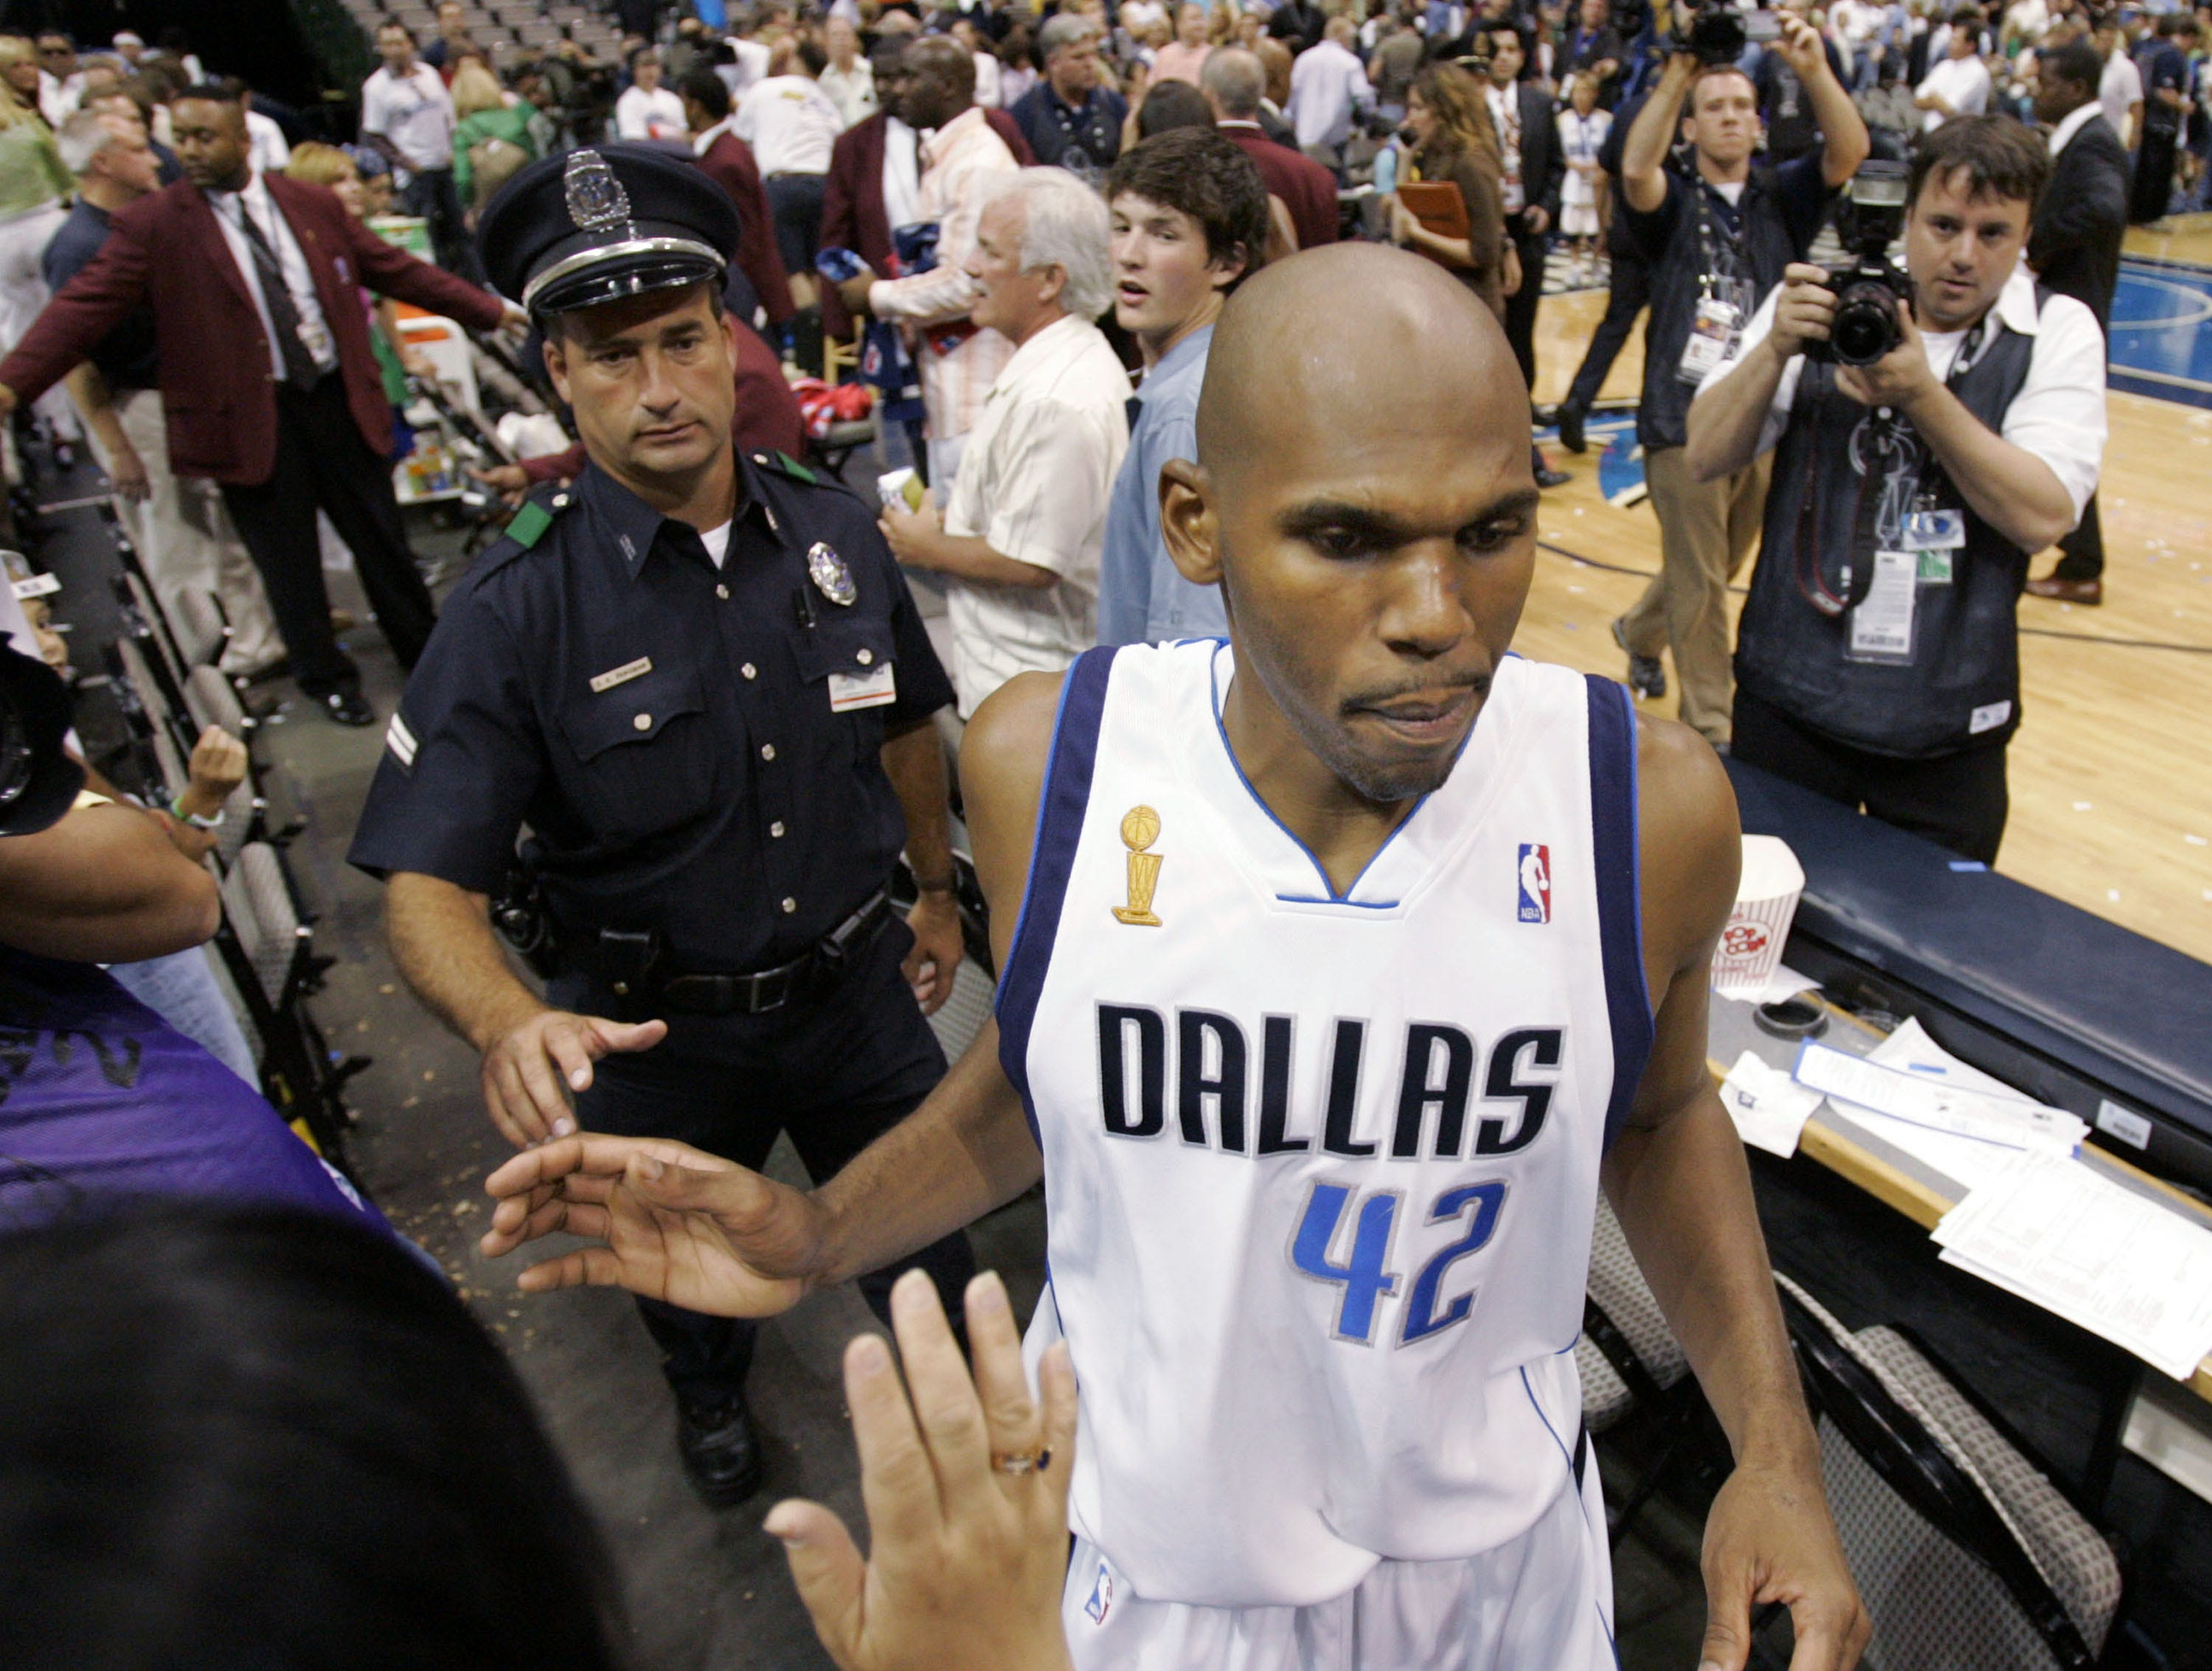 Dallas Mavericks' Jerry Stackhouse slaps hands with fans as he leaves the court after the Mavericks beat the Miami Heat 99-85 in Game 2 of the NBA basketball finals in Dallas, Sunday, June 11, 2006. Stackhouse scored 19 points in the game.